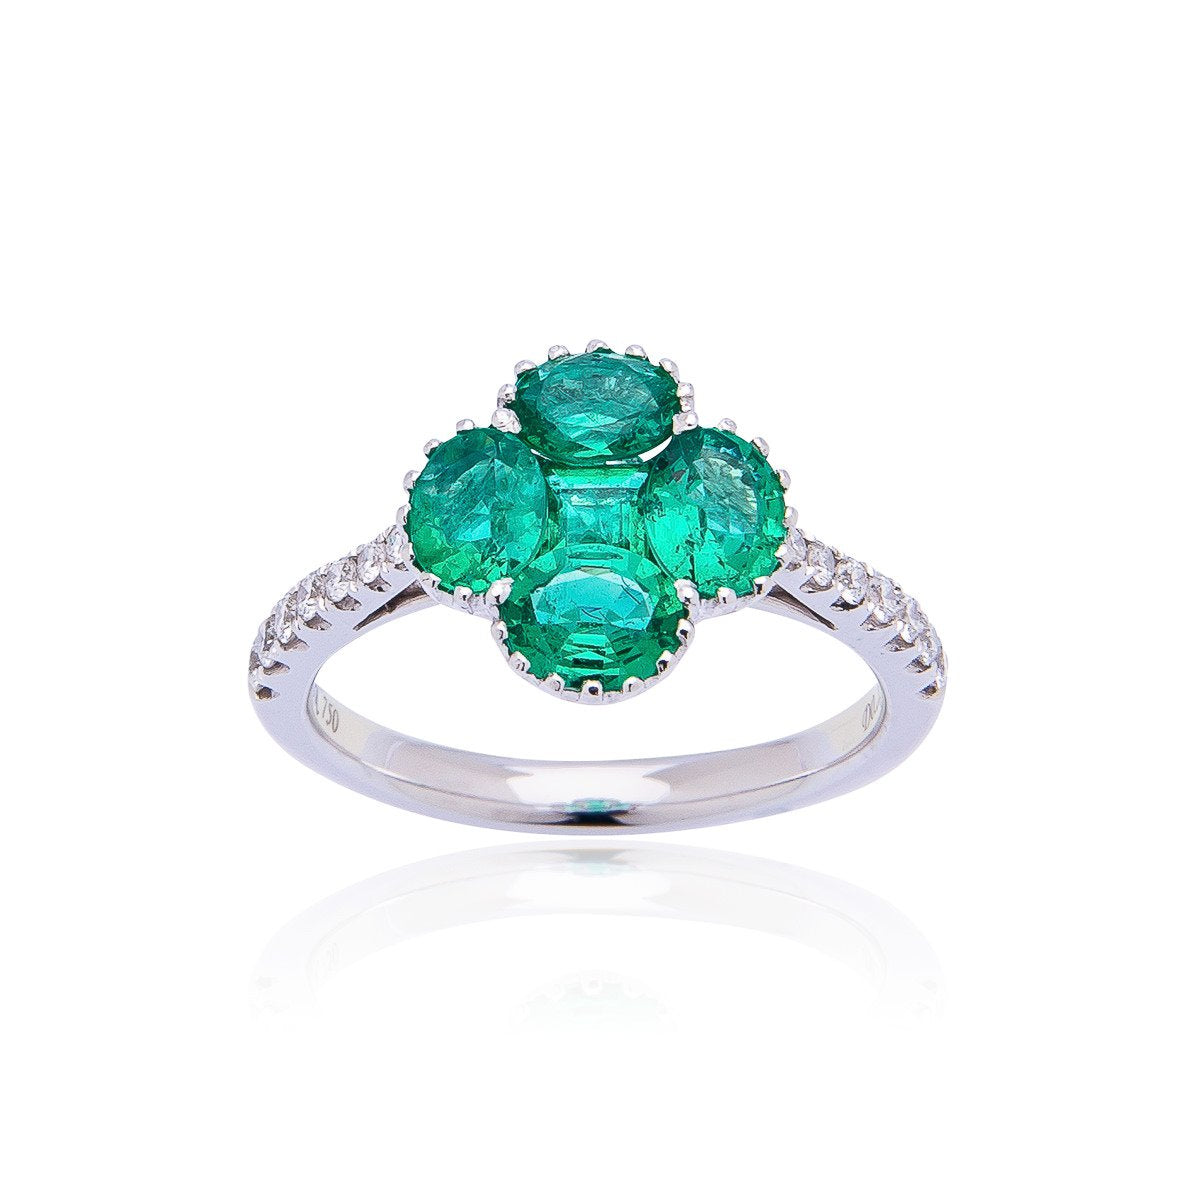 Sabel Collection 18K White Gold Emerald and Diamond Clover Ring